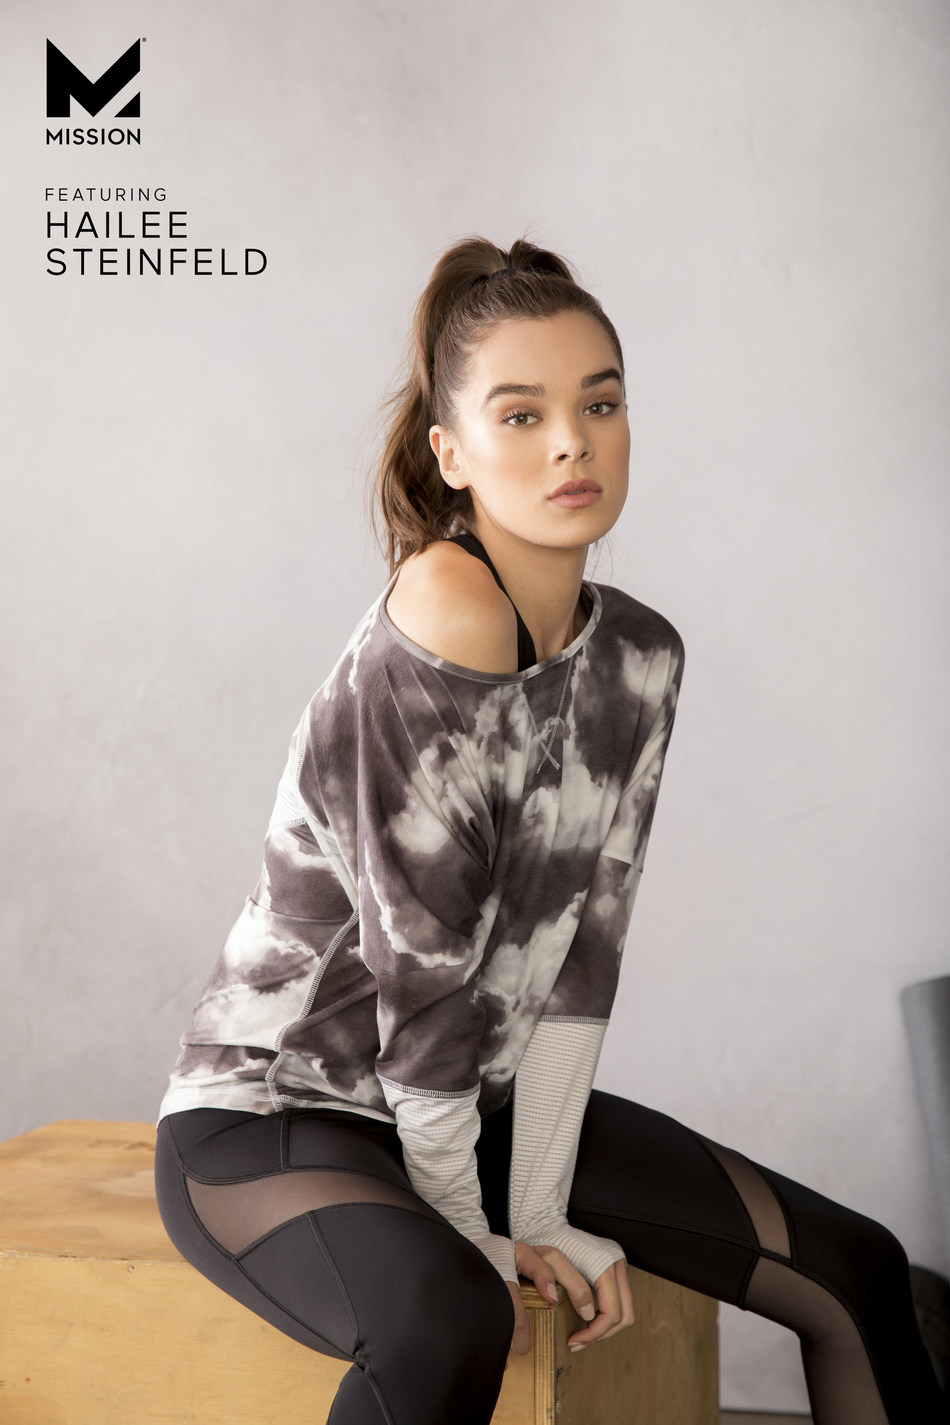 MISSION's Fall/Winter Campaign Featuring Brand Ambassador Hailee Steinfeld